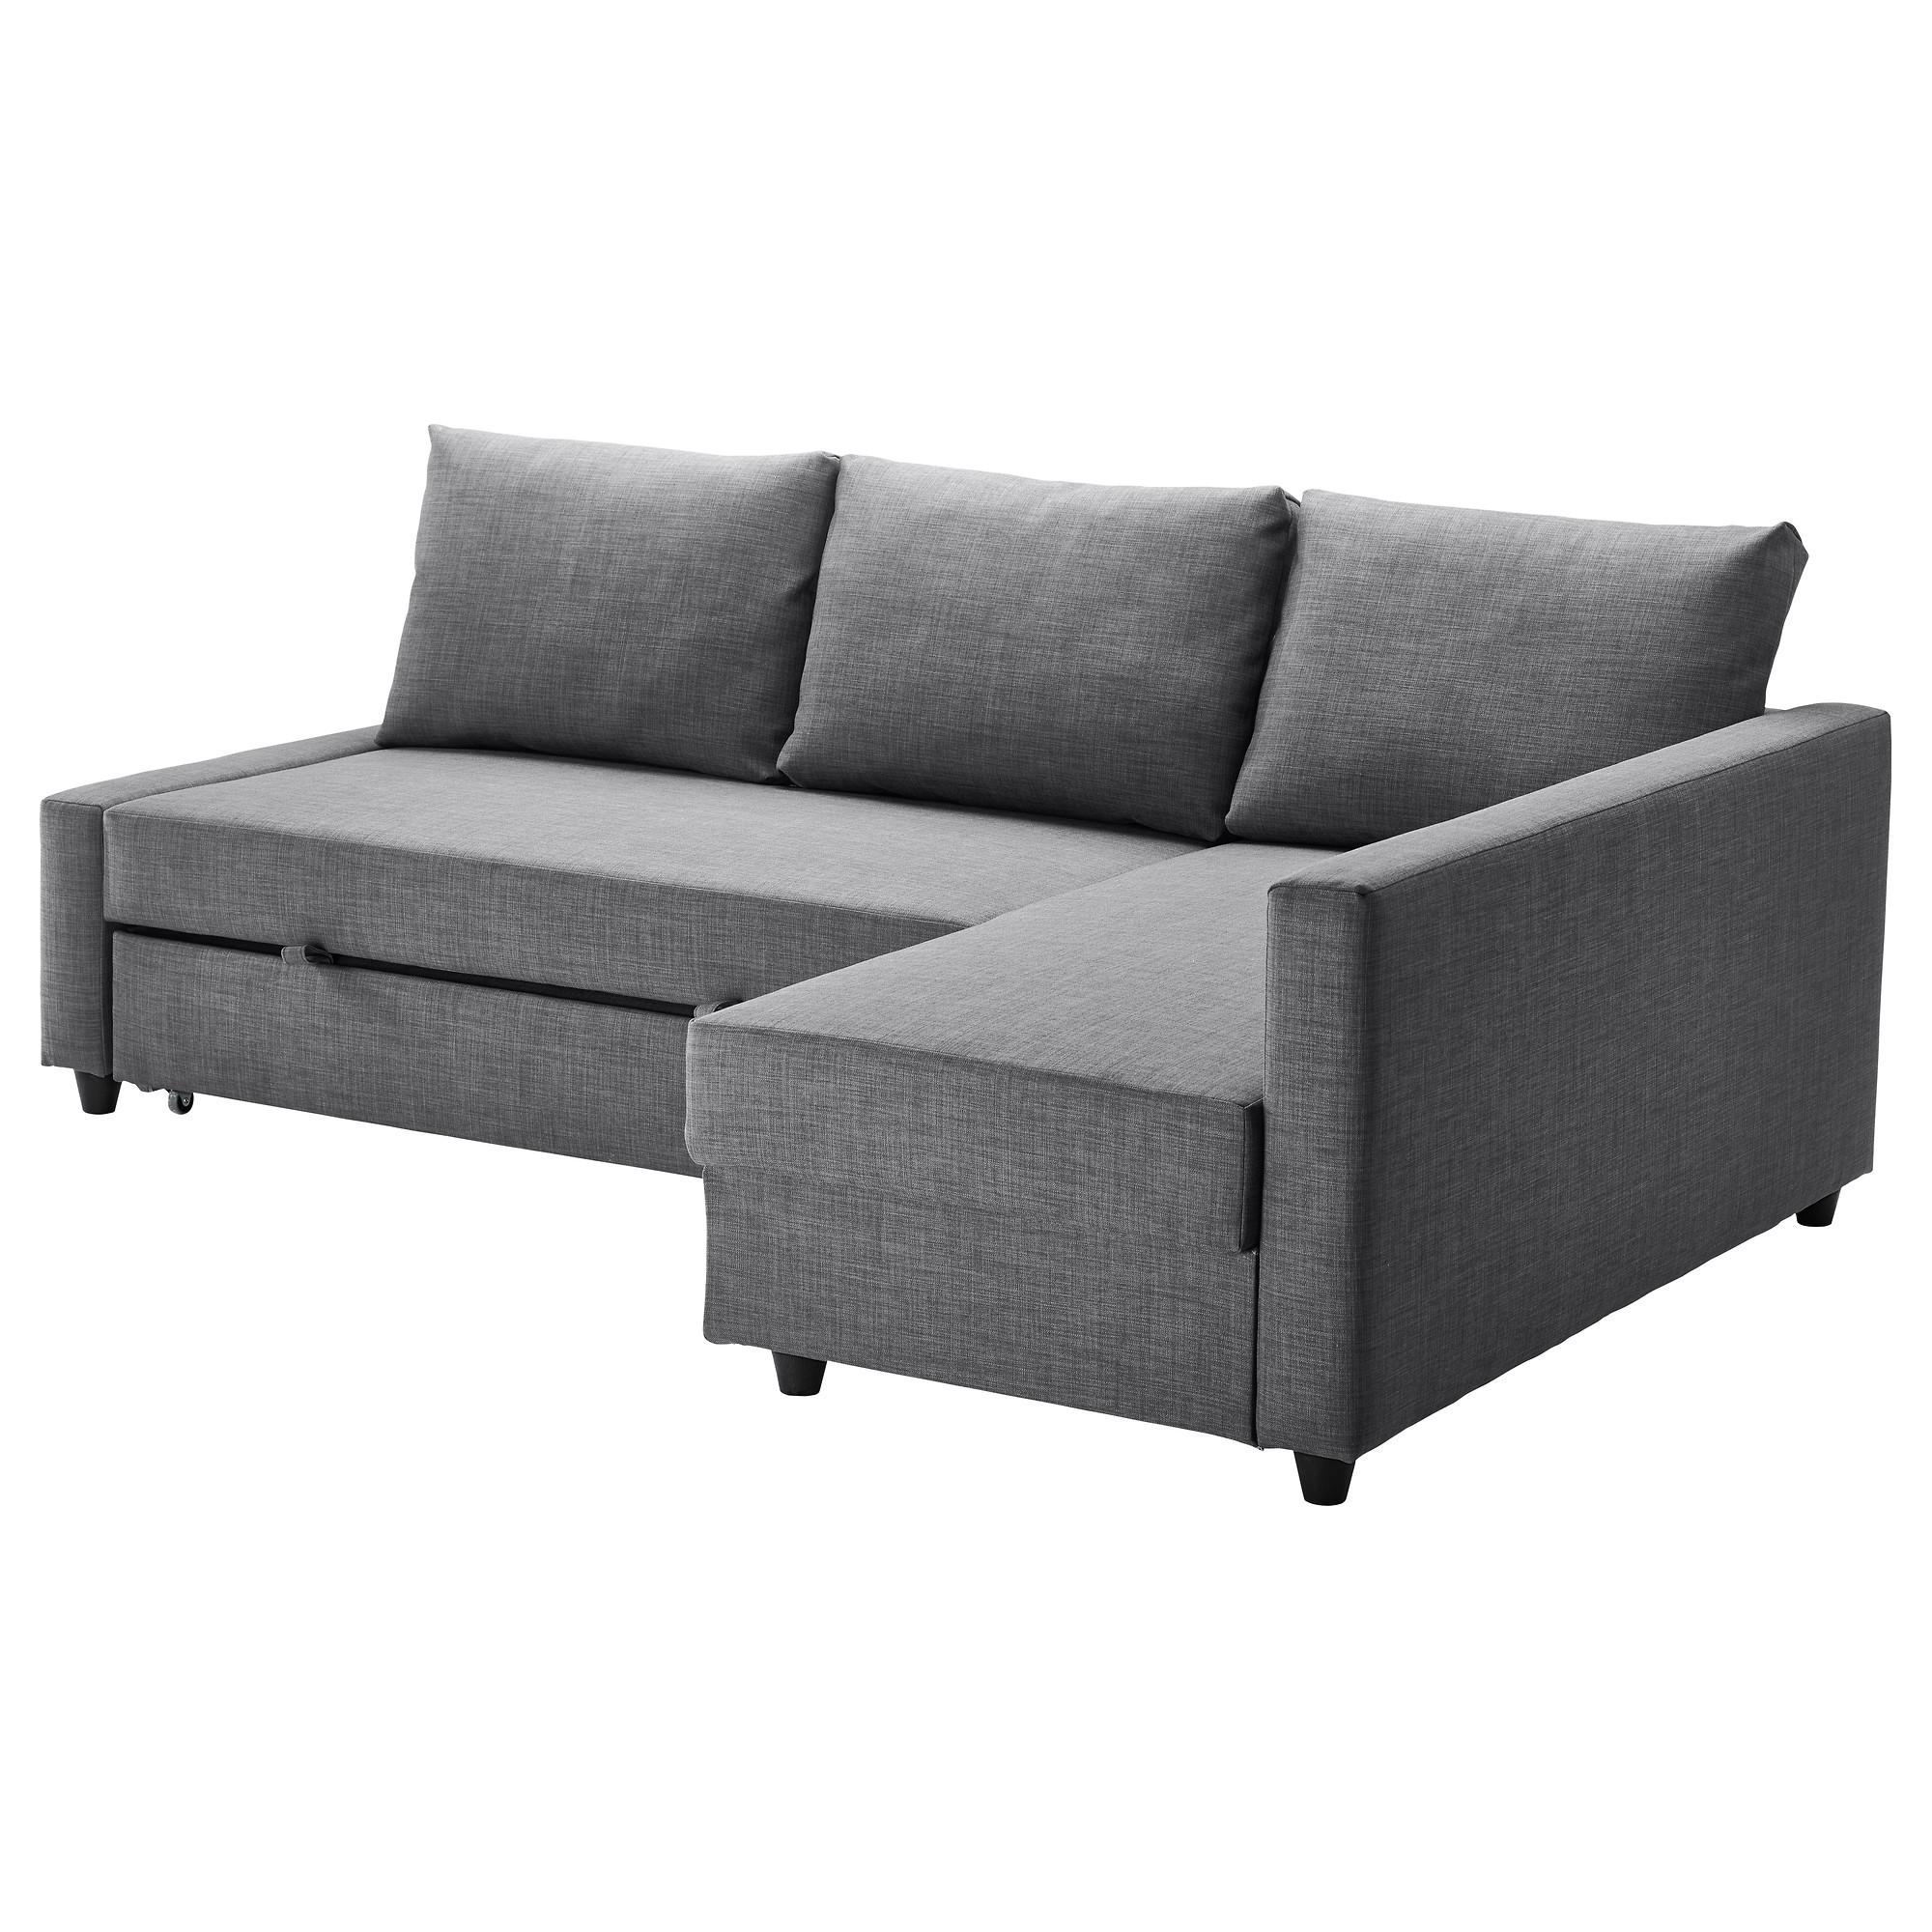 friheten sleeper sectional,3 seat w/storage - skiftebo dark gray